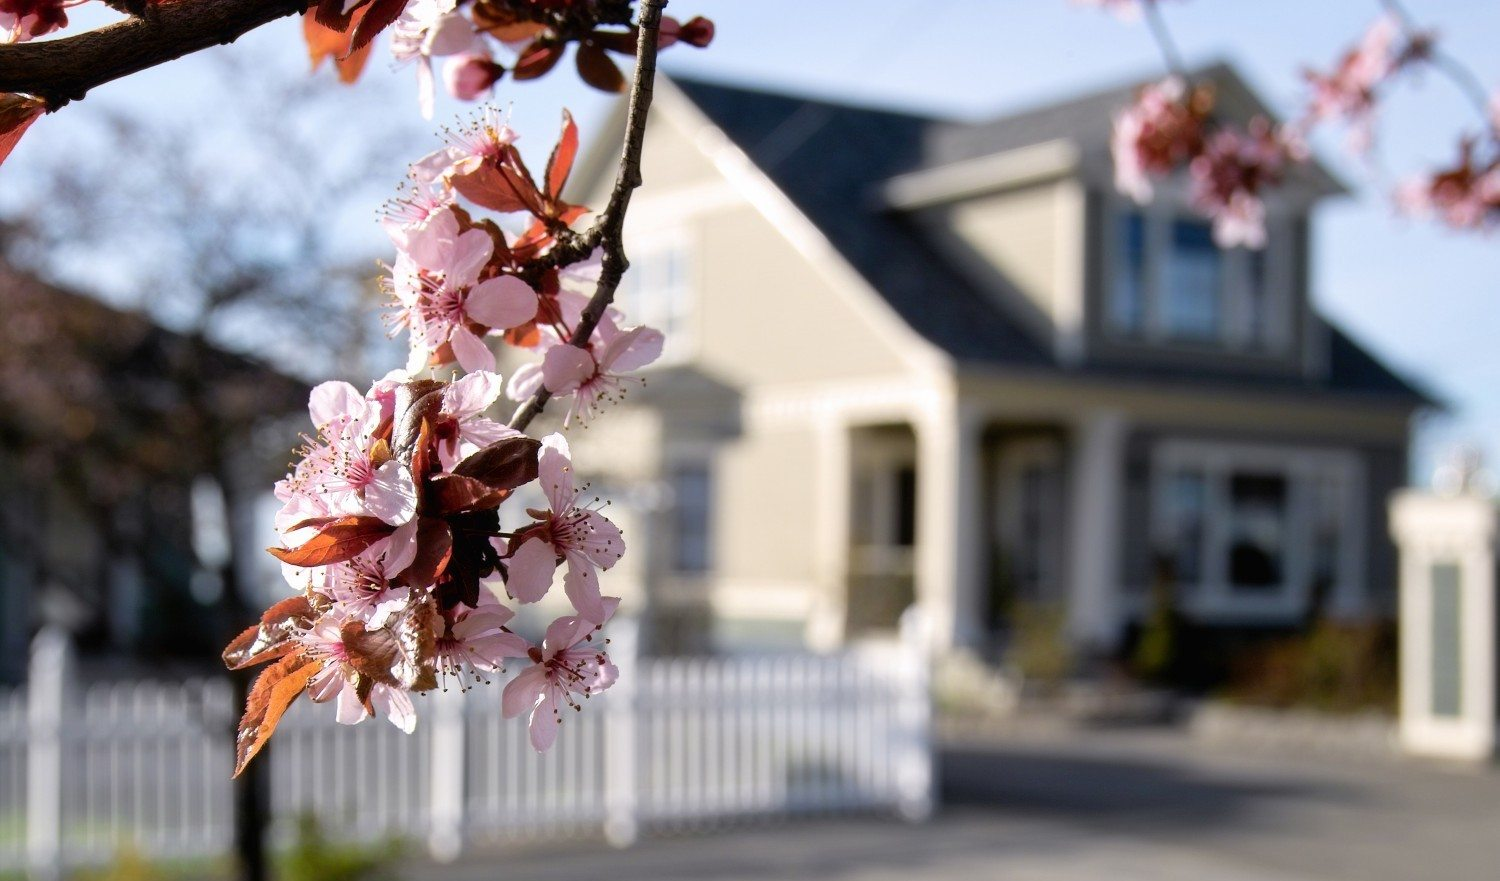 Photograph of pink blossoms with blurred house and yard visible in the distance.